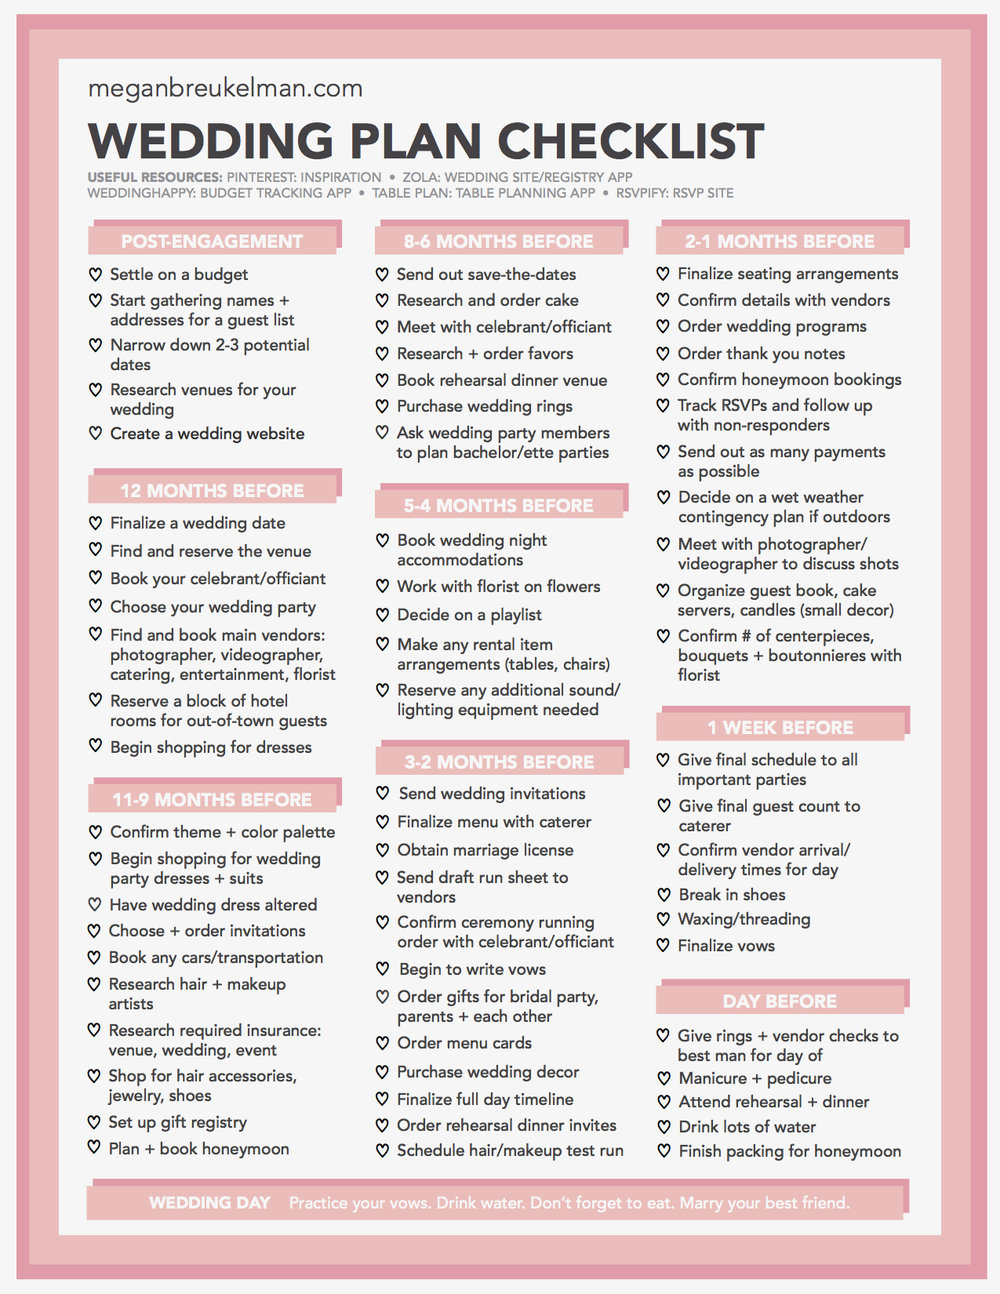 Ultimate Wedding Planning Checklist.jpg